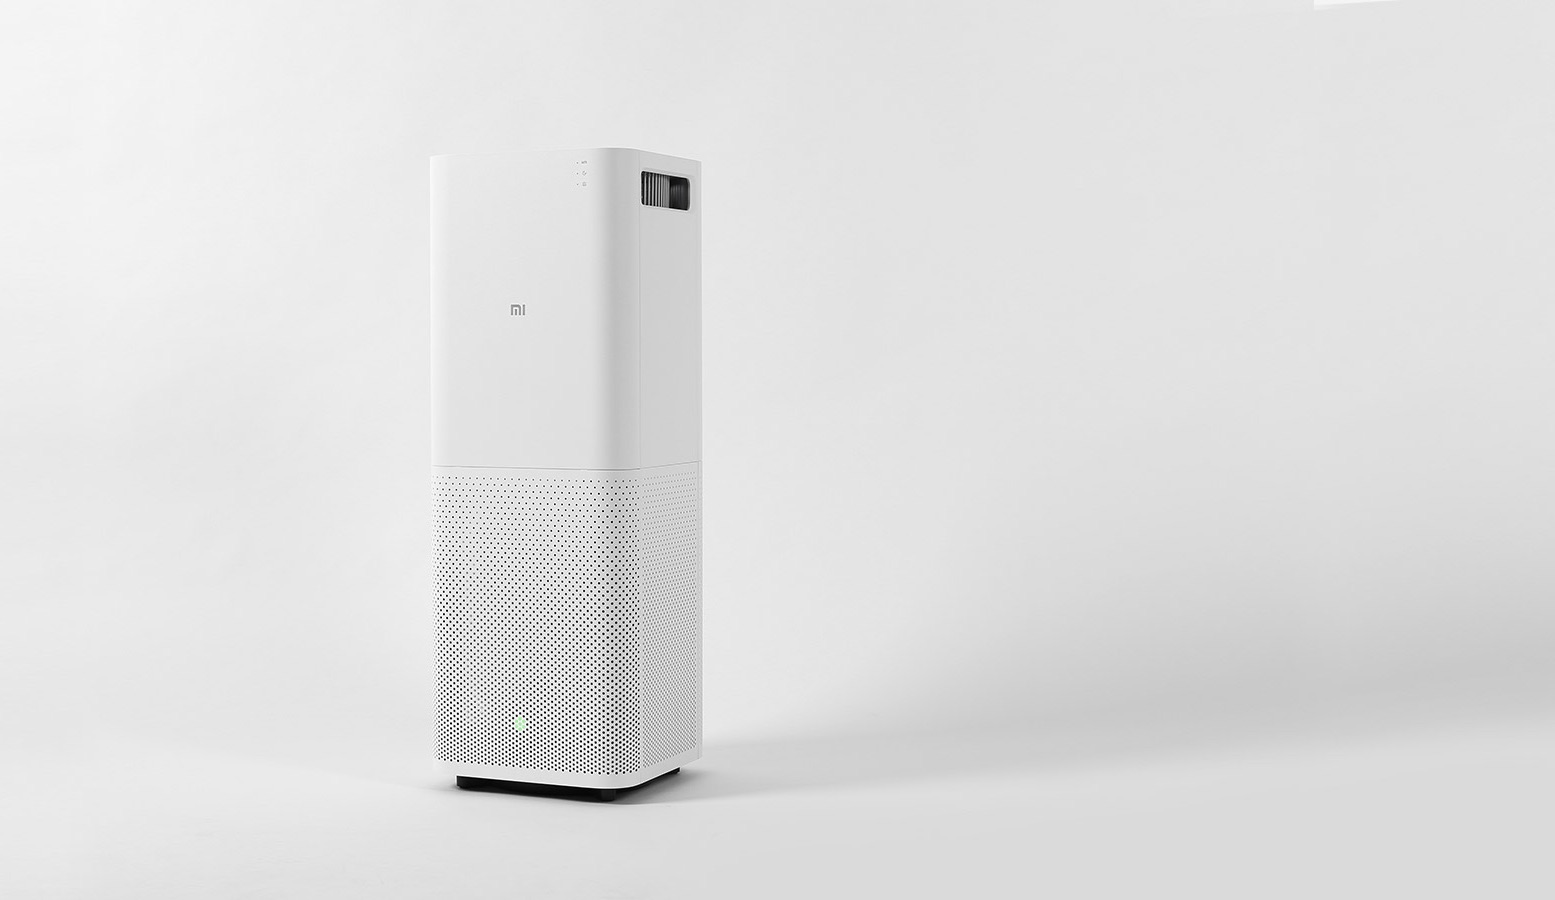 Xiaomi has an addition to the 'Internet Home' with air purifier